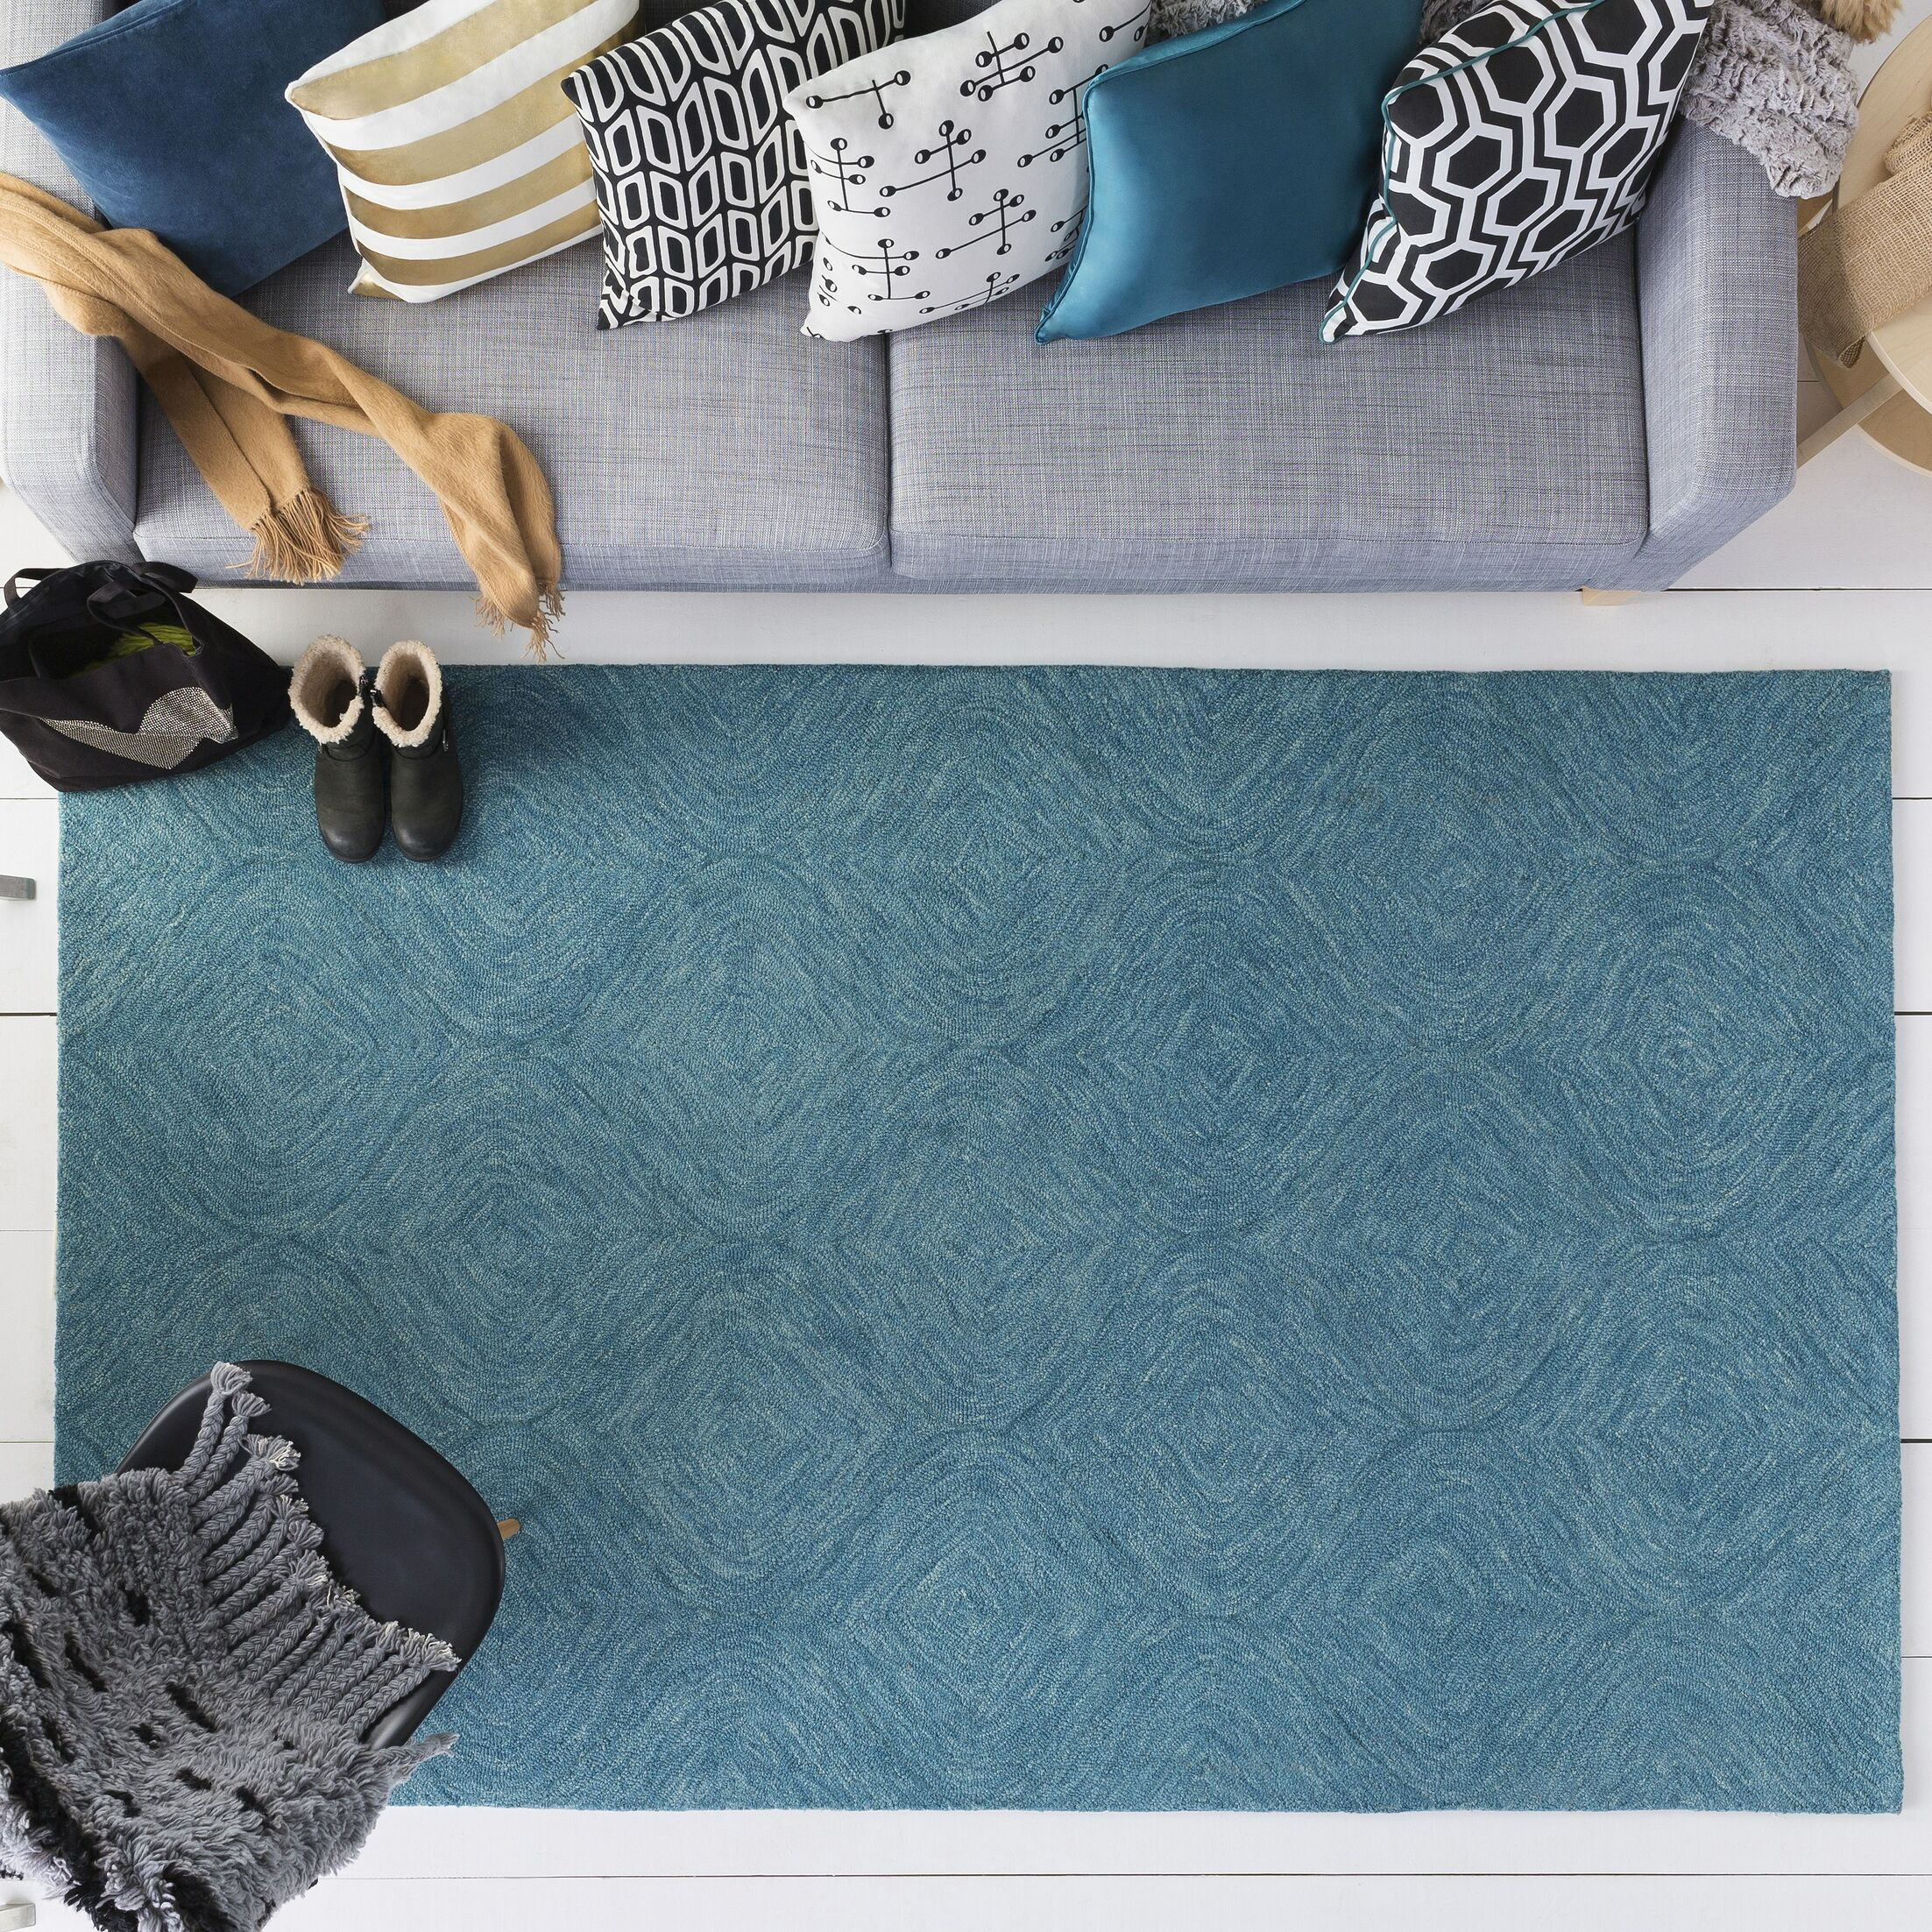 Bloch Hand-Tufted Turquoise Area Rug Rug Size: Rectangle 9' x 13'